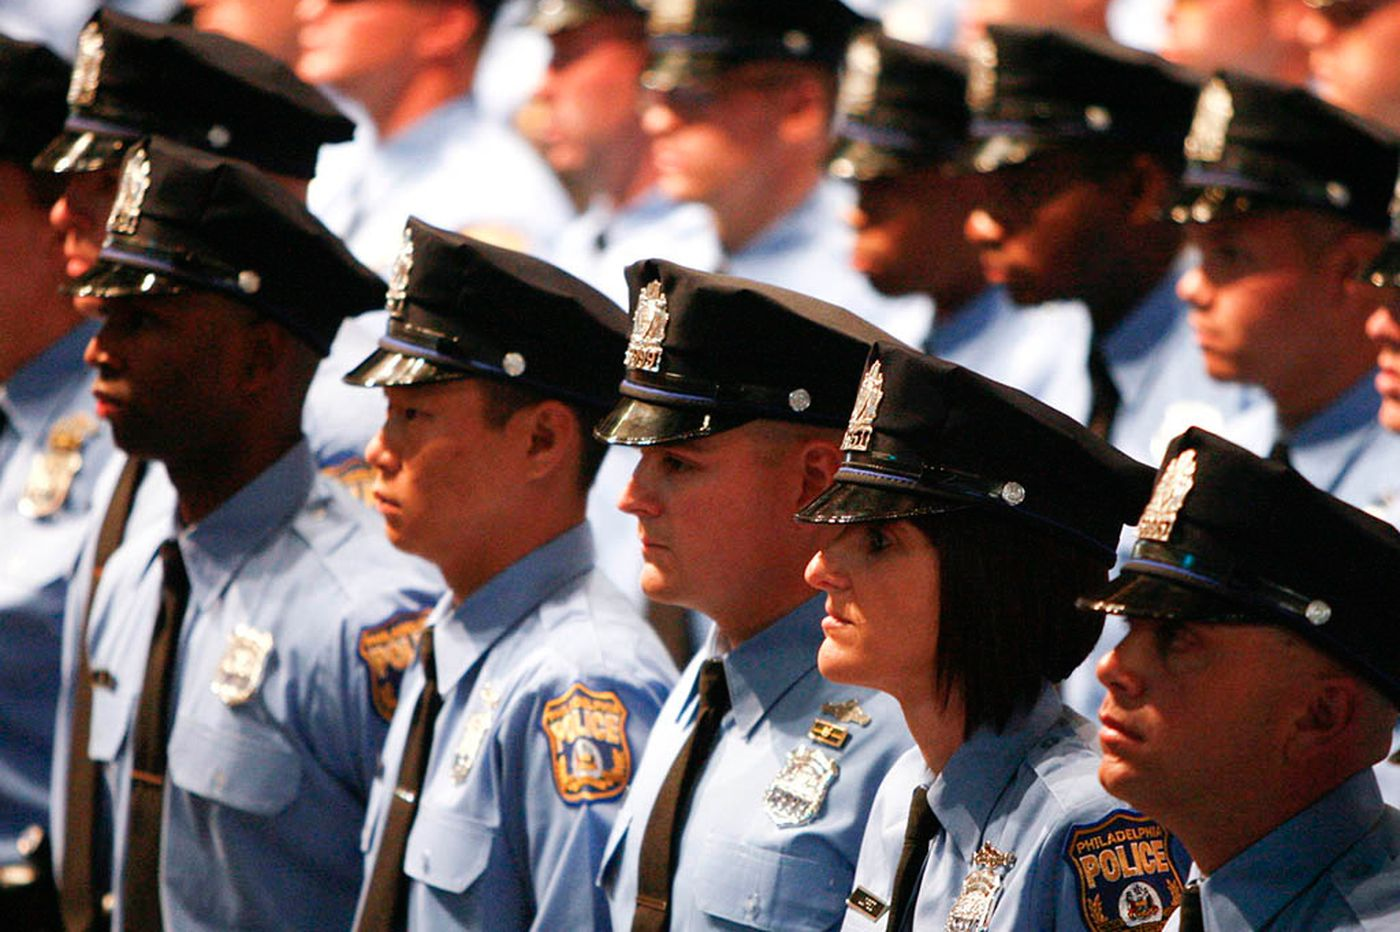 Why does Philly have so few black police recruits?